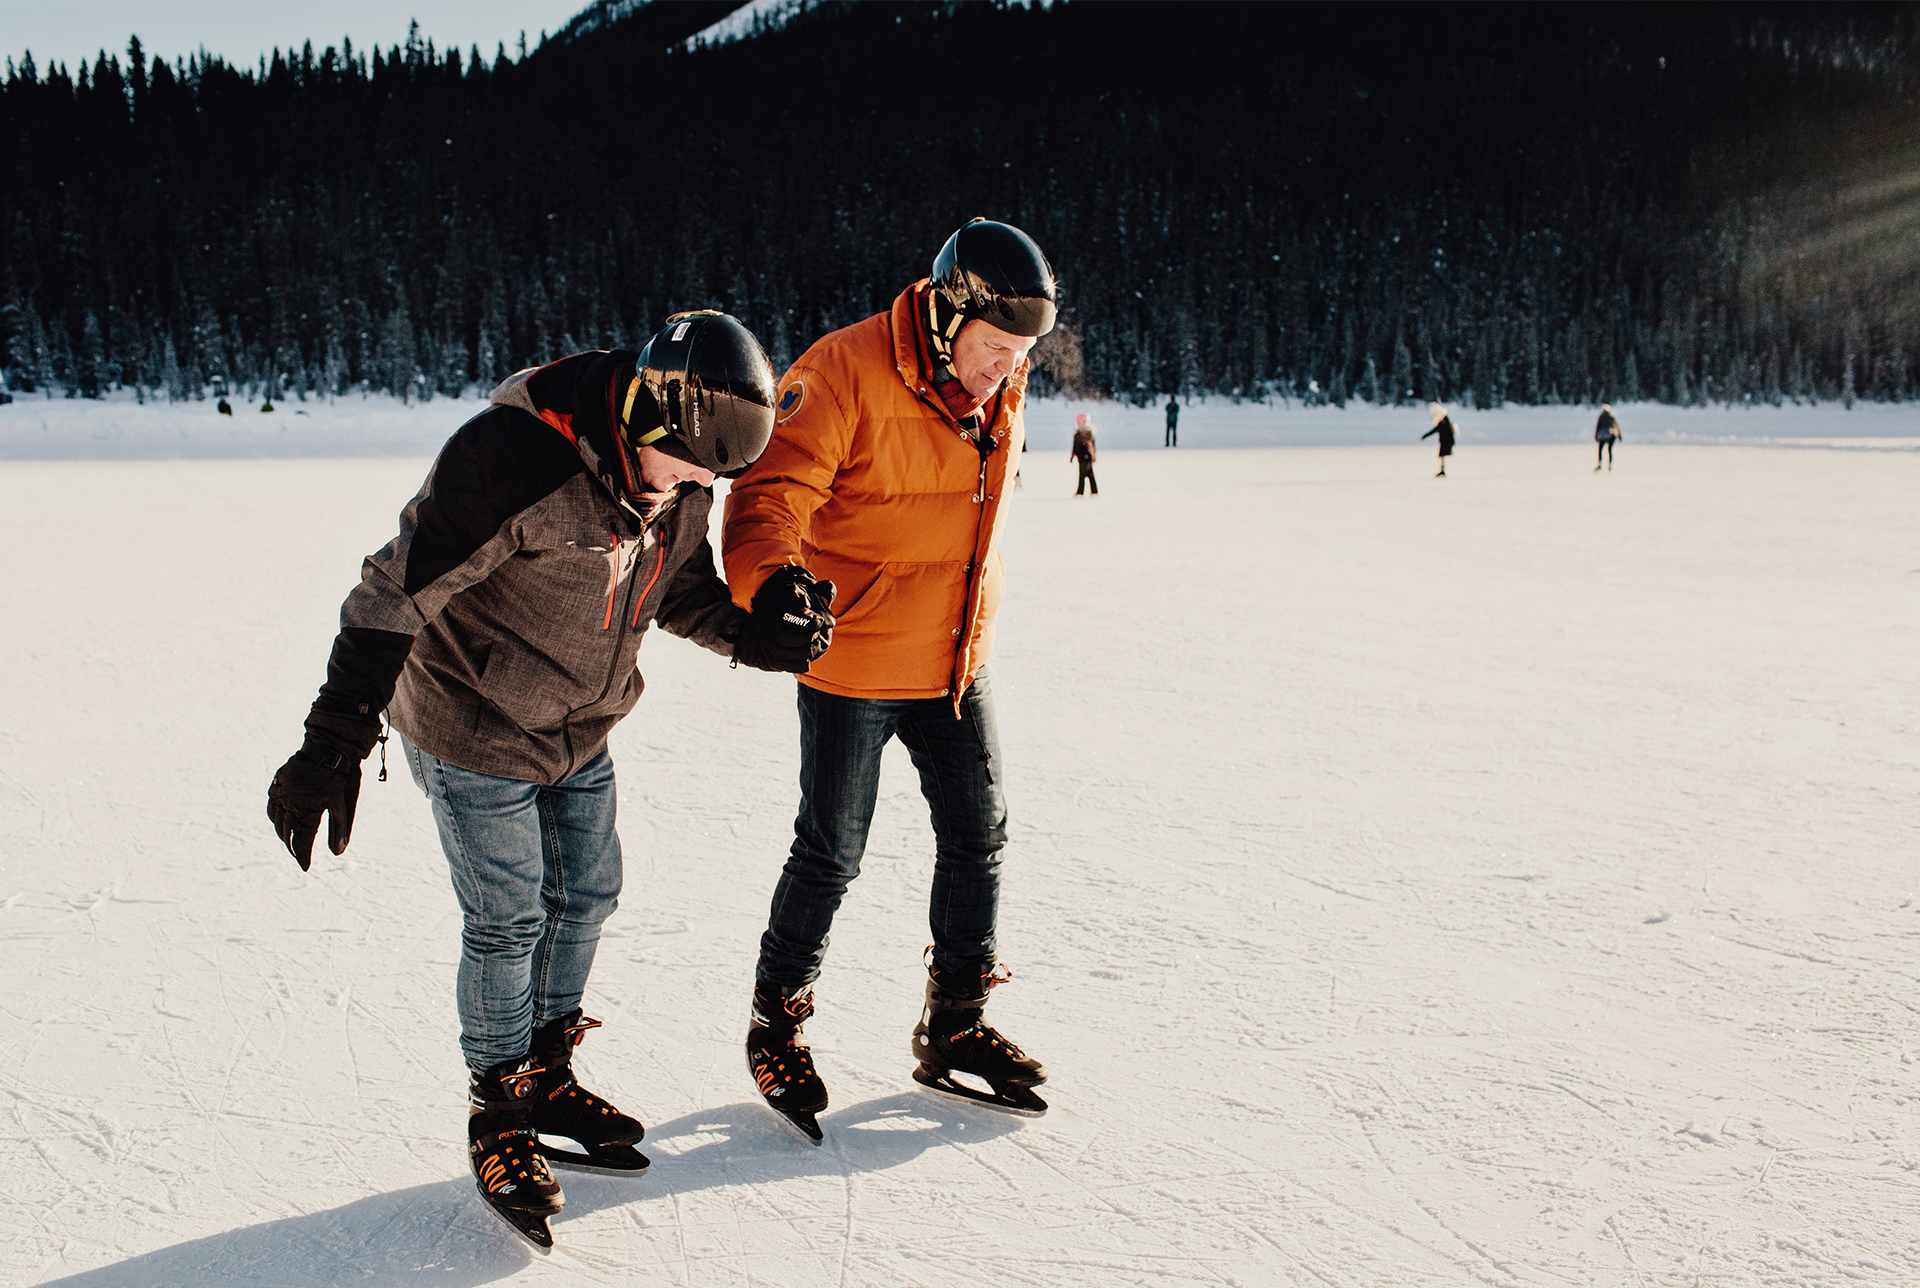 Rob Scheer and his husband Reece ice skating on Lake Louise in Alberta, Canada